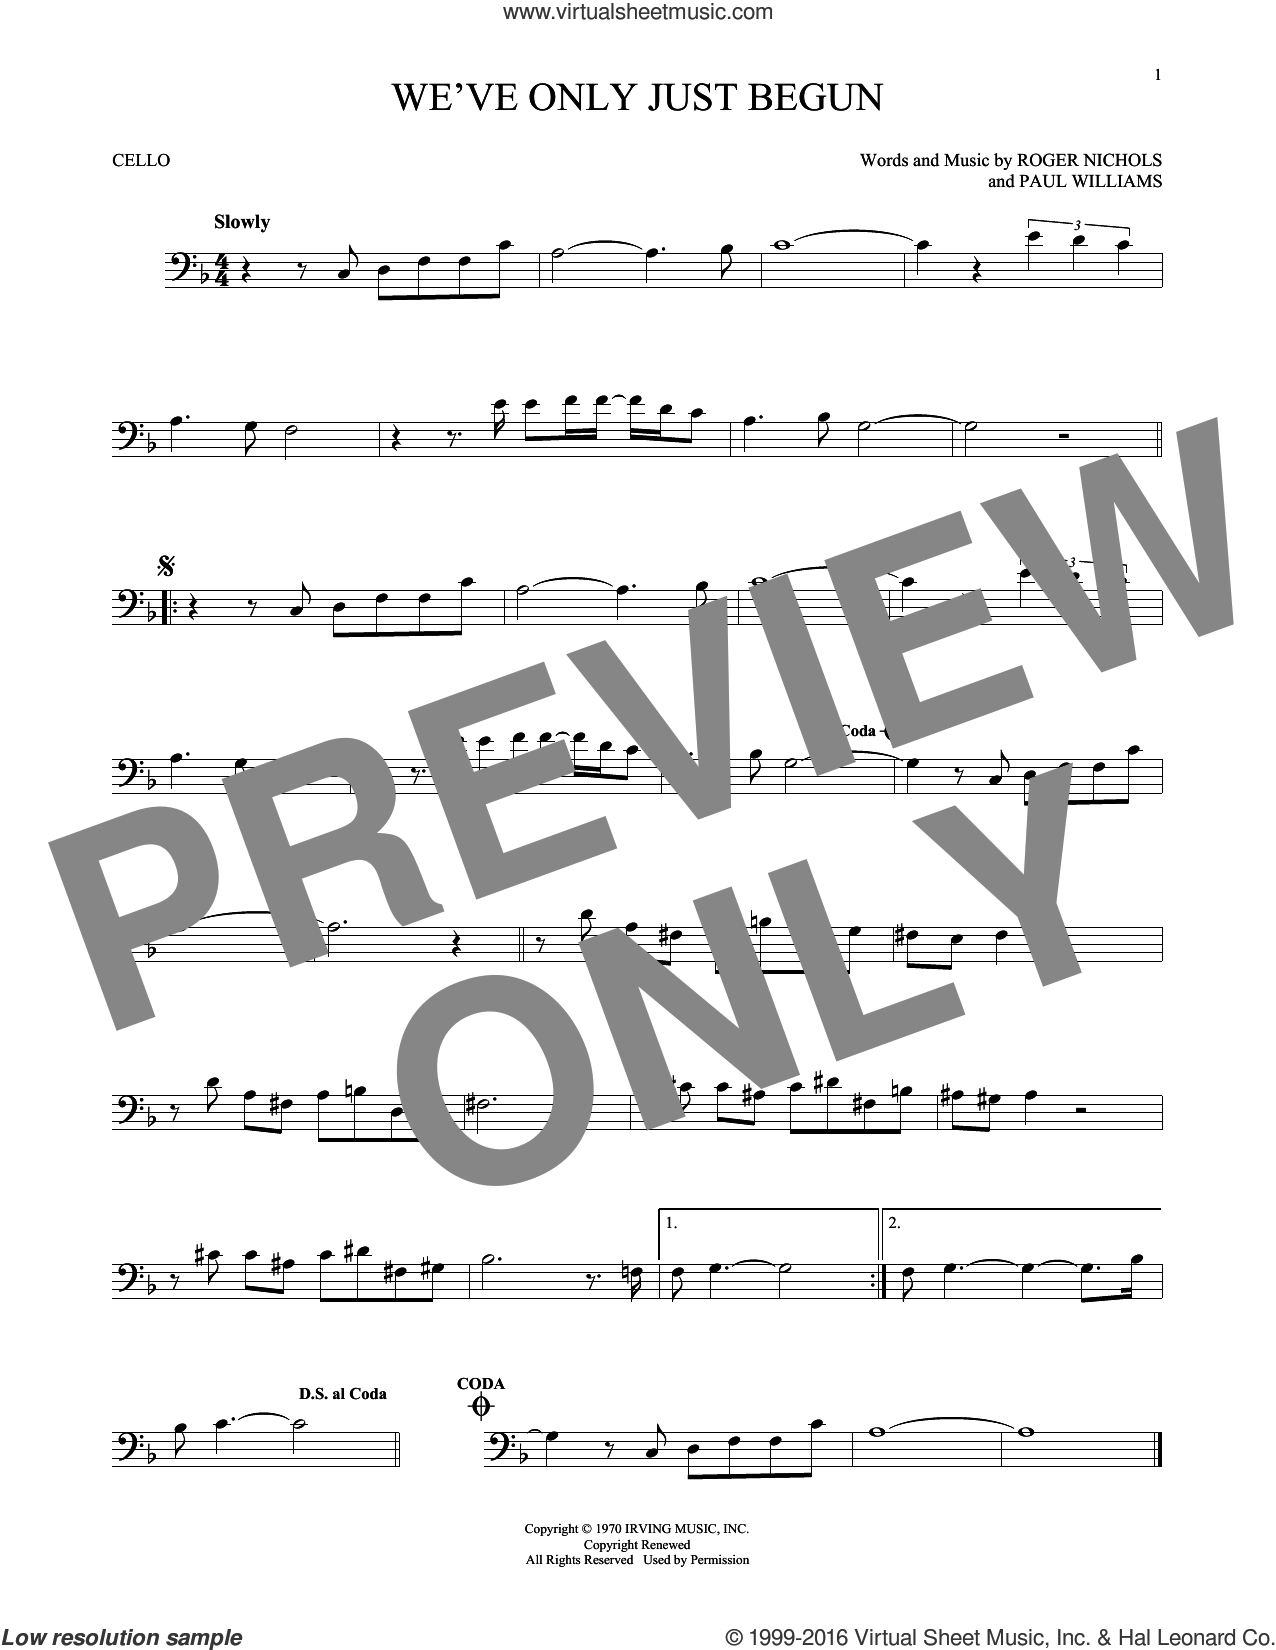 We've Only Just Begun sheet music for cello solo by Roger Nichols, Carpenters and Paul Williams. Score Image Preview.